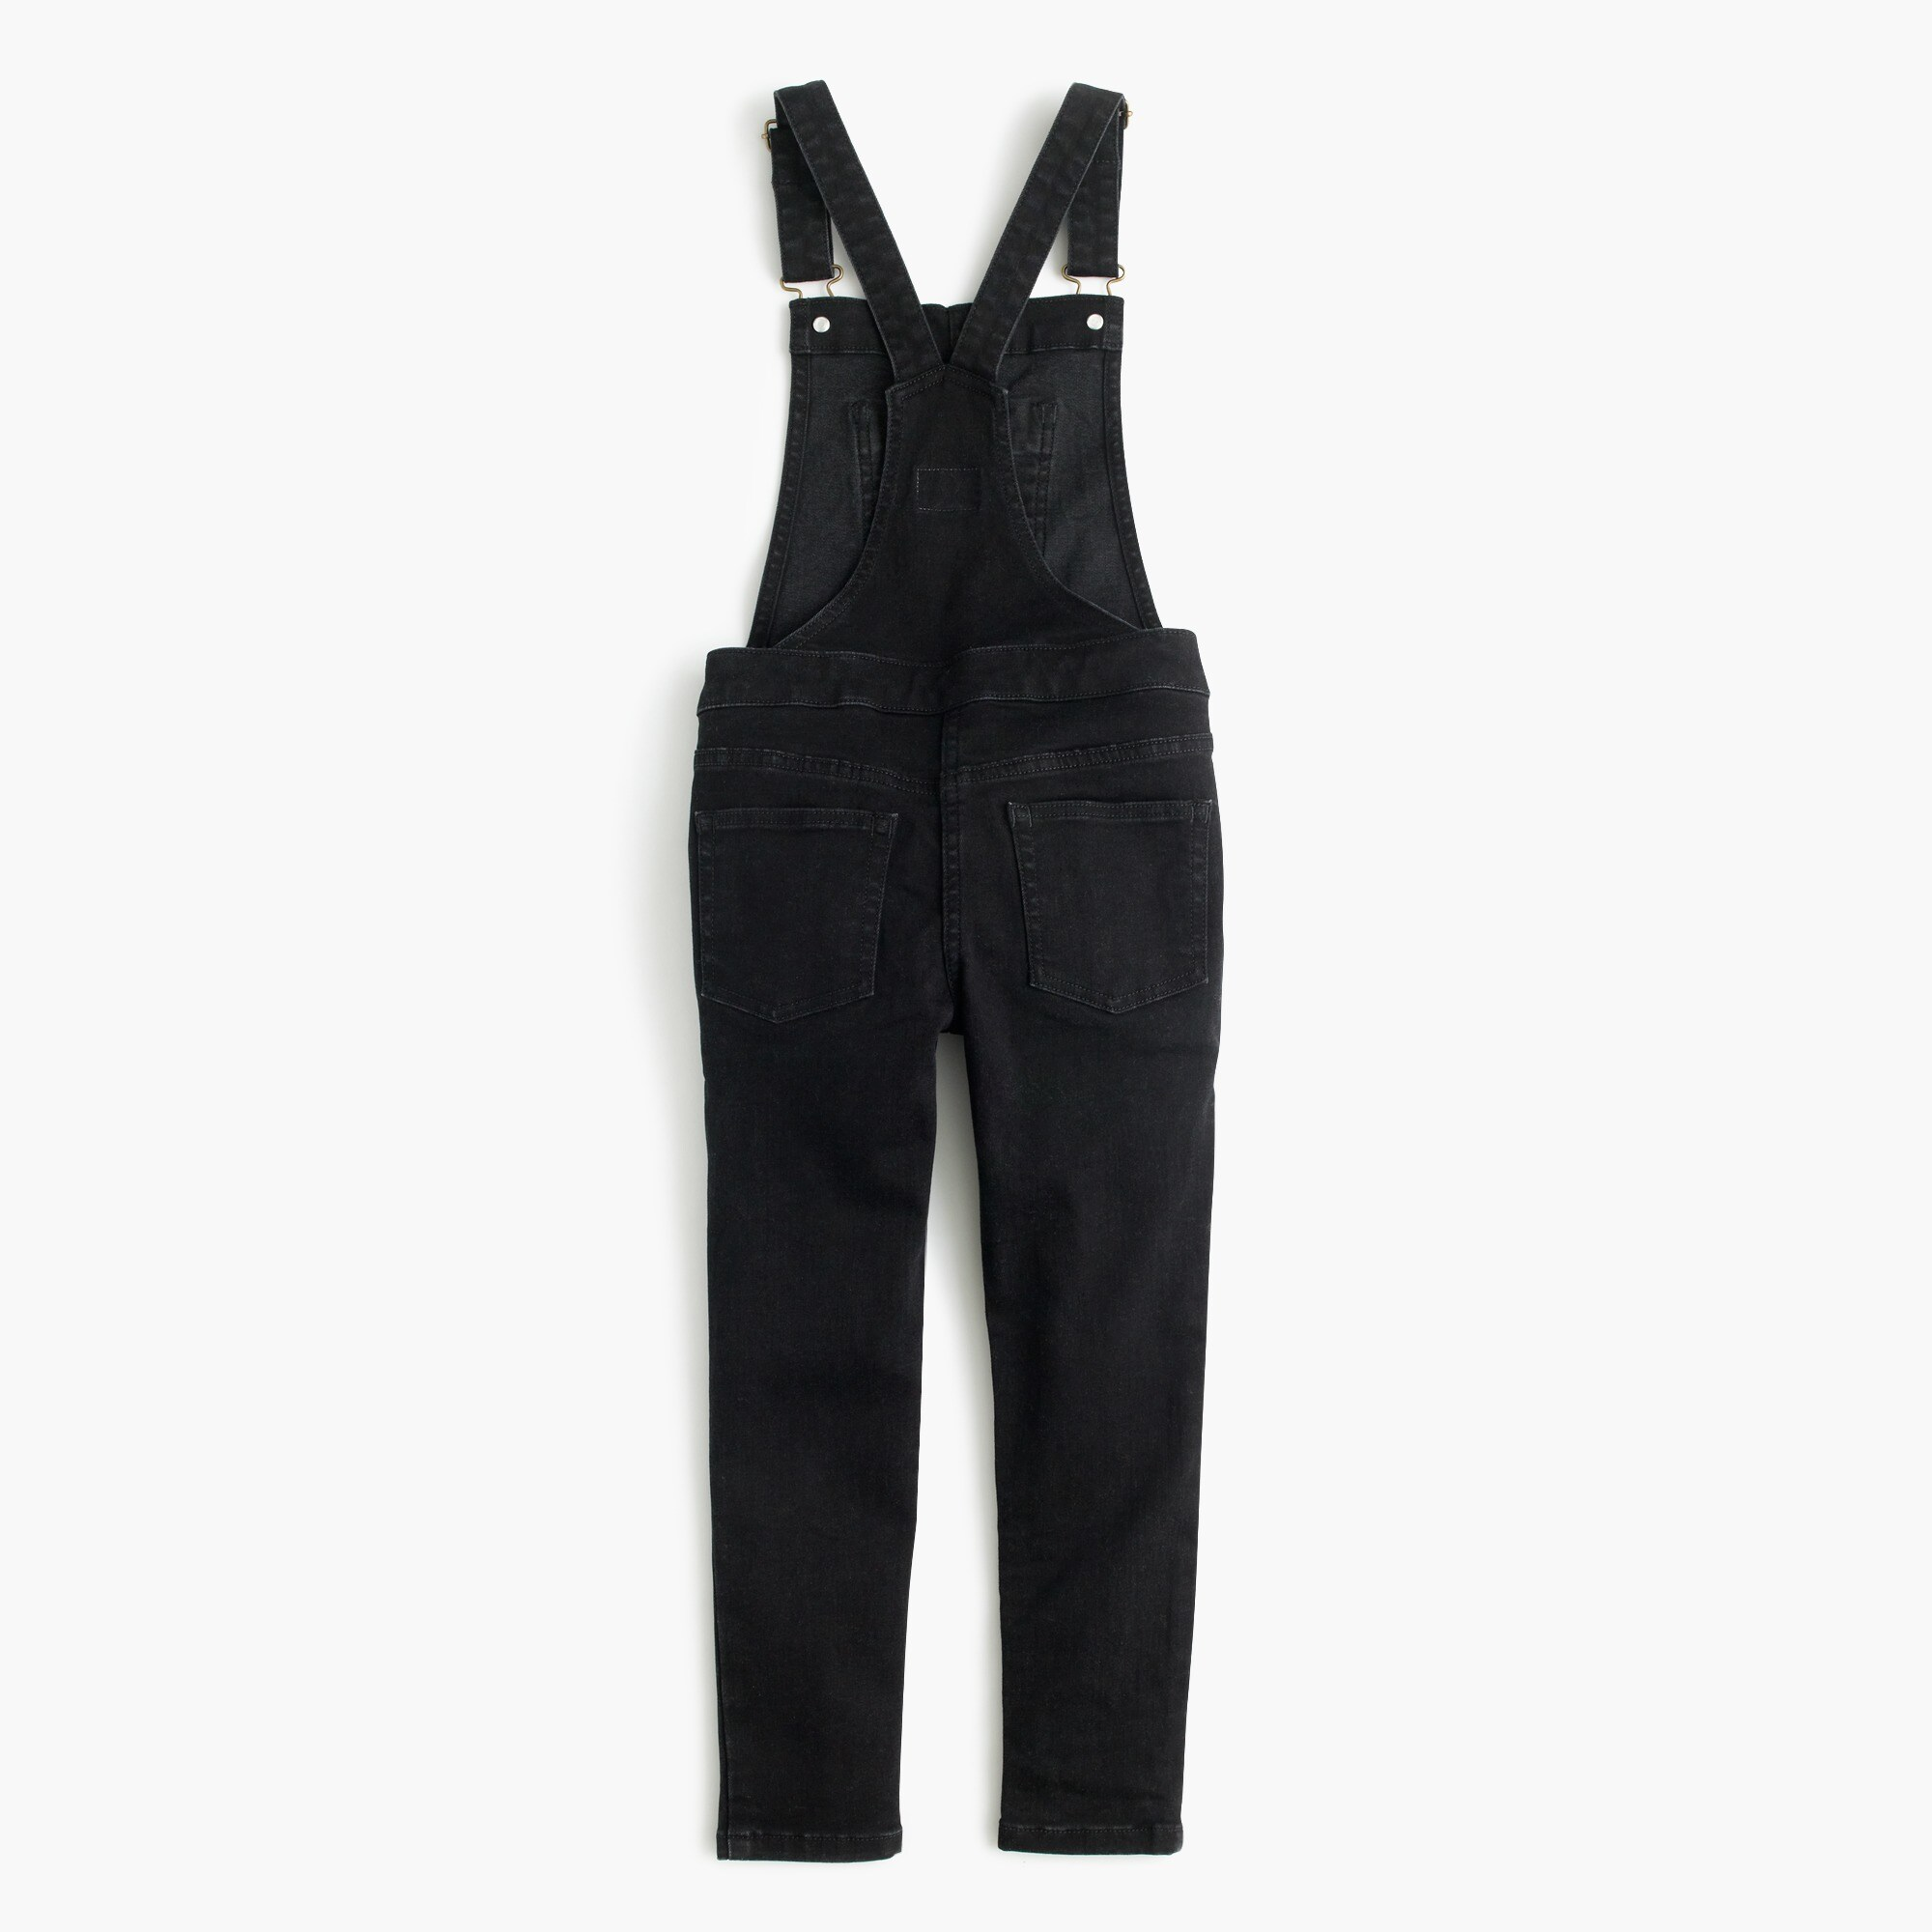 Girls' stretch denim overalls in black